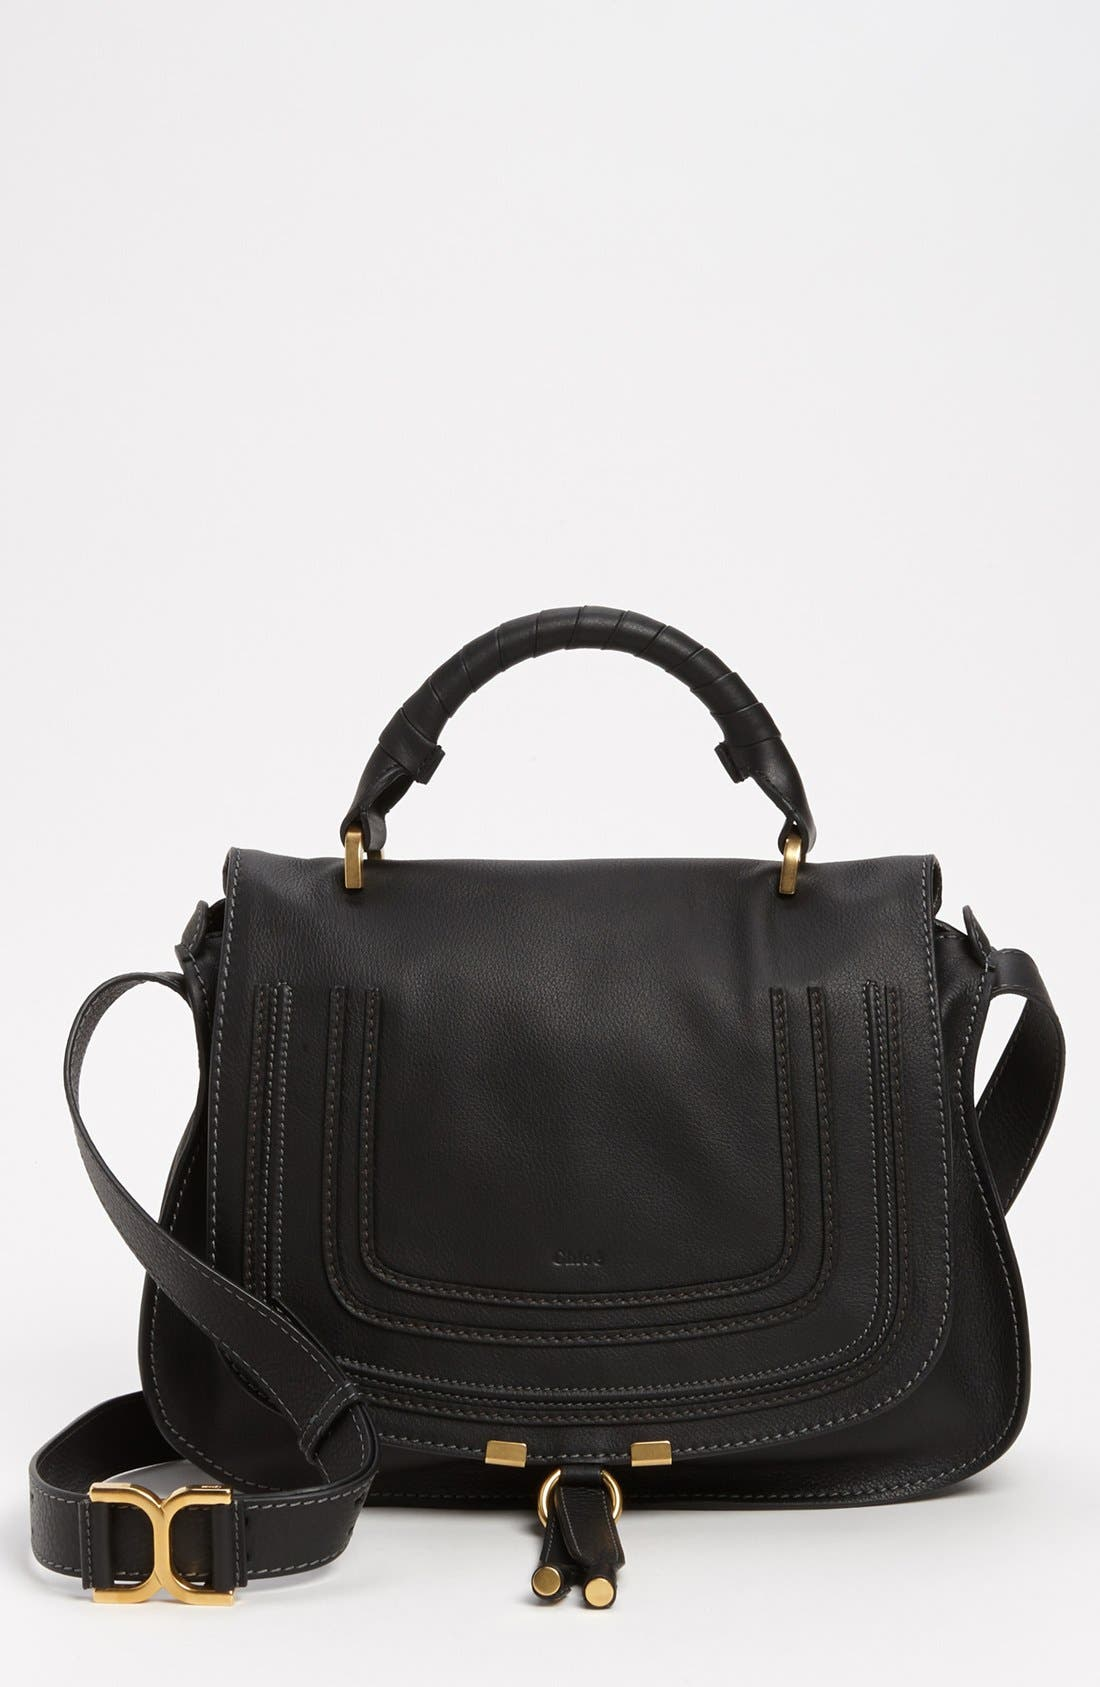 Main Image - Chloé 'Marcie' Top Handle Leather Satchel